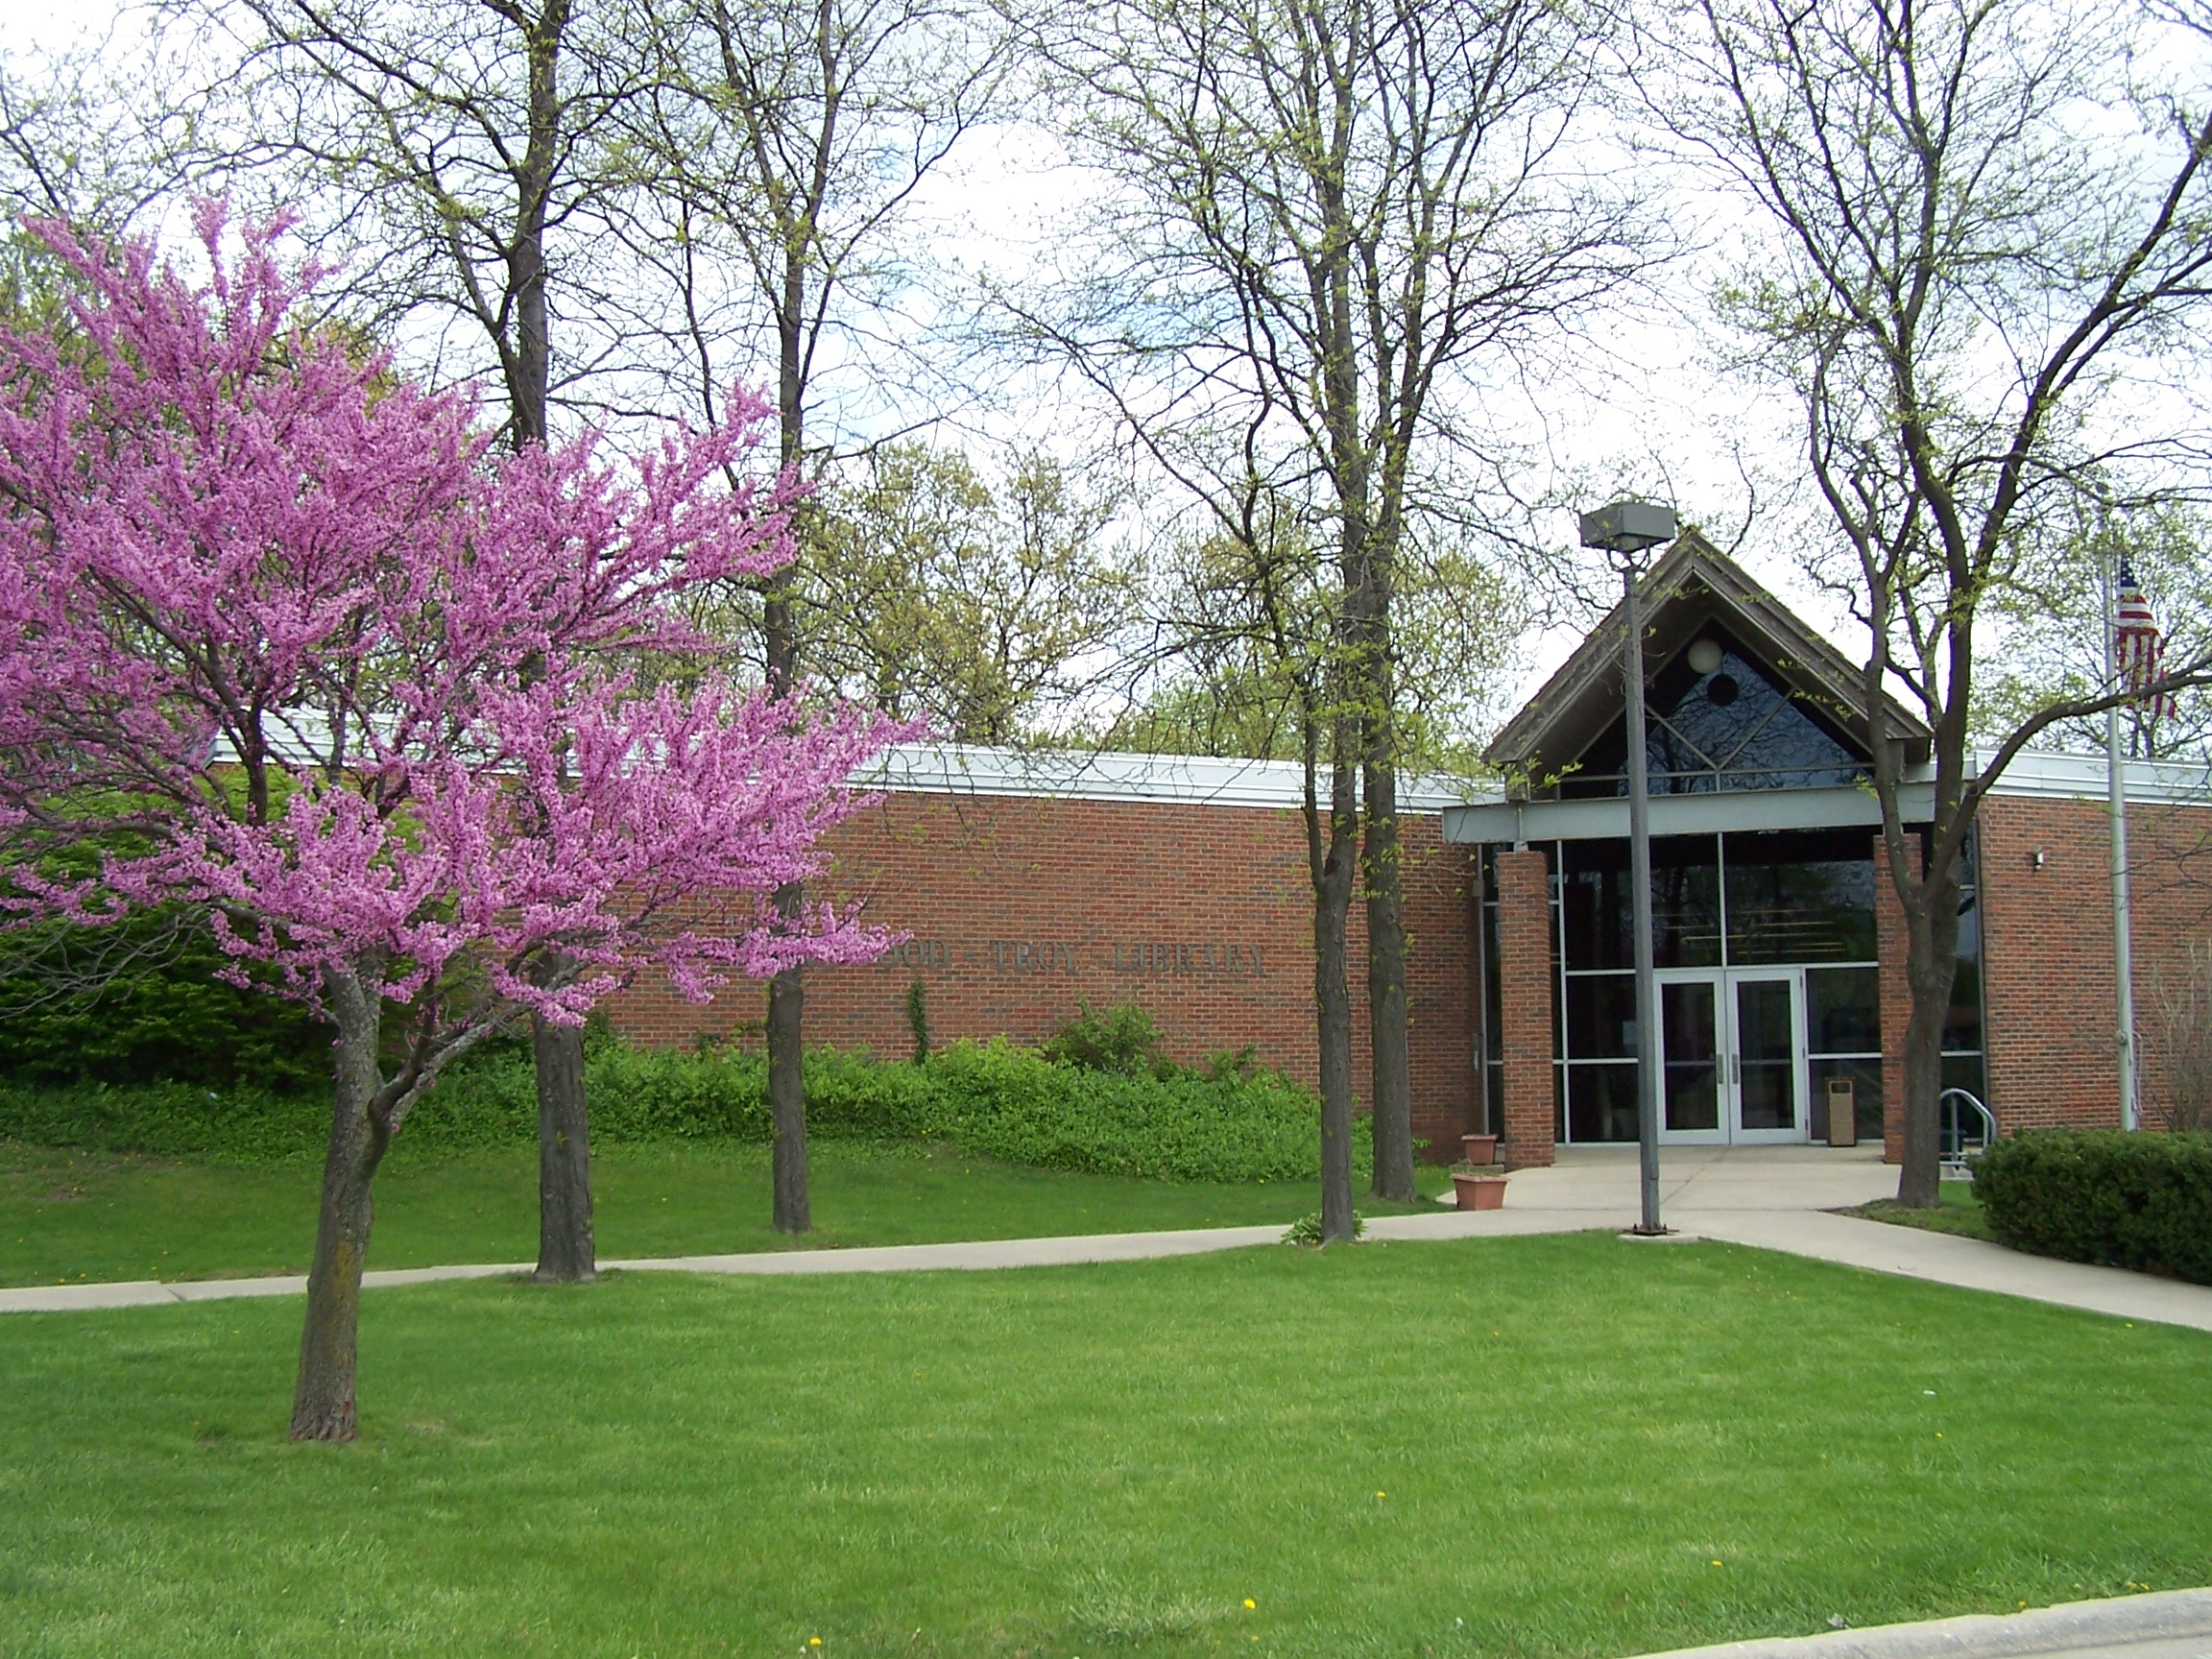 Shorewood-Troy Library spring